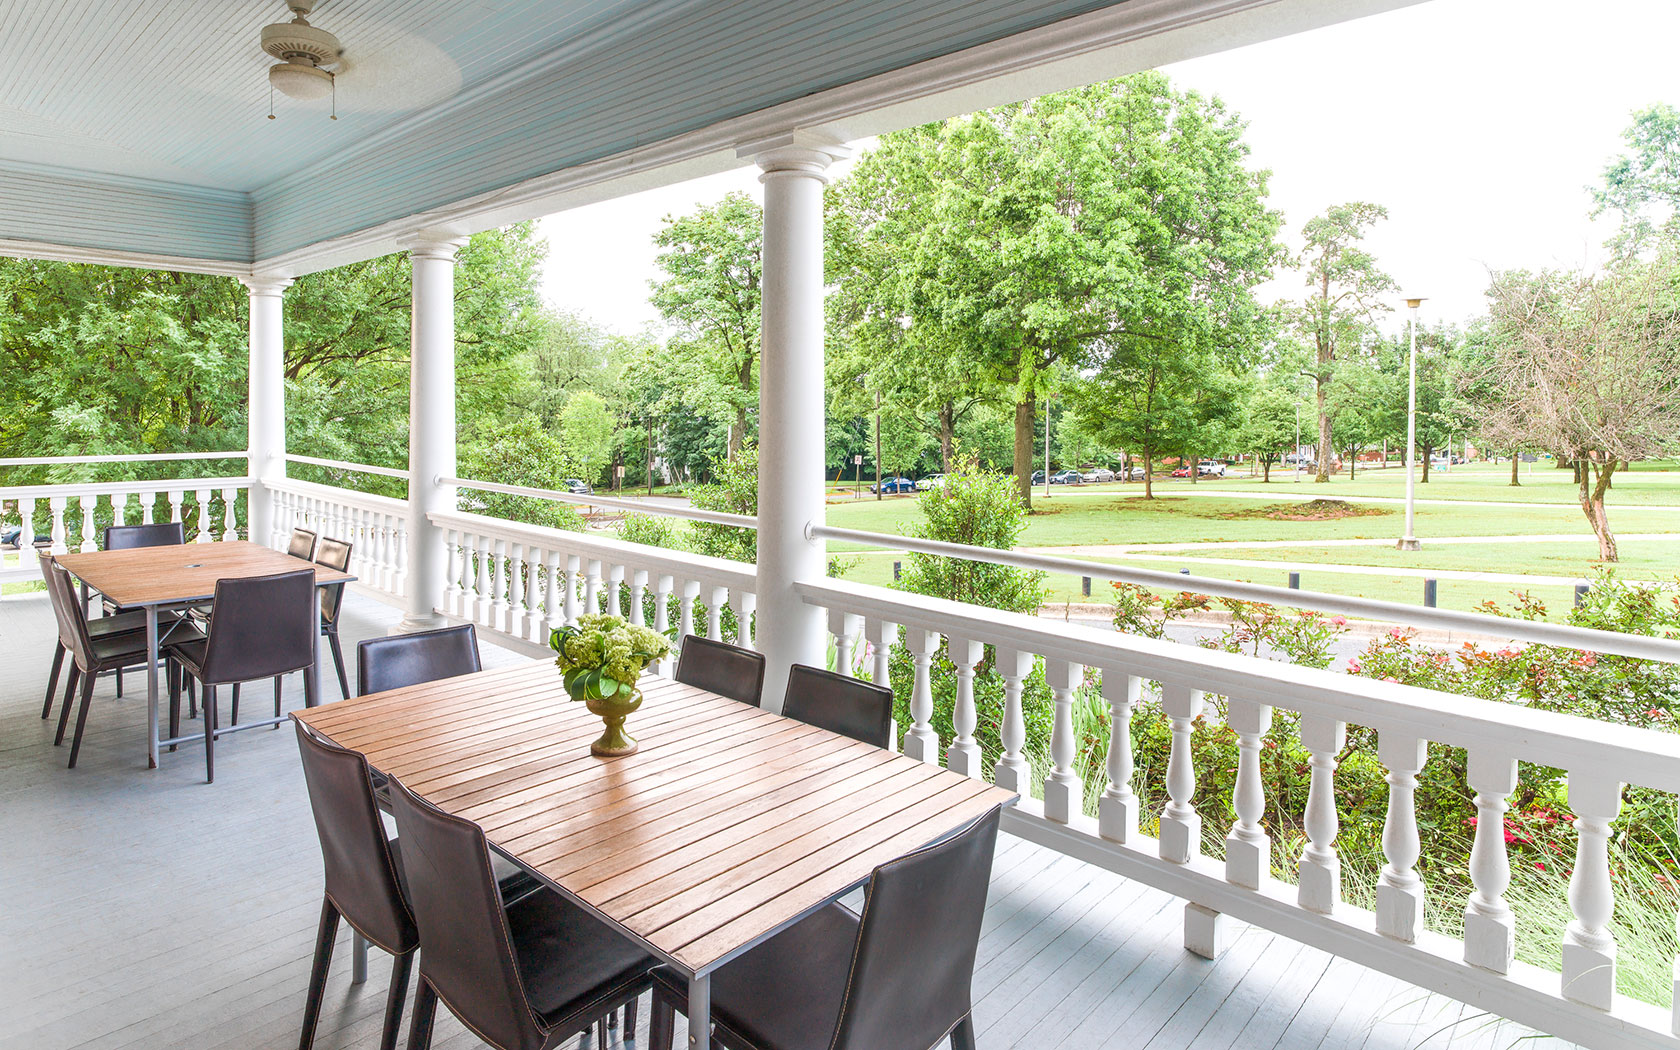 brown wooden tables on the southern style porch overlooking greenery